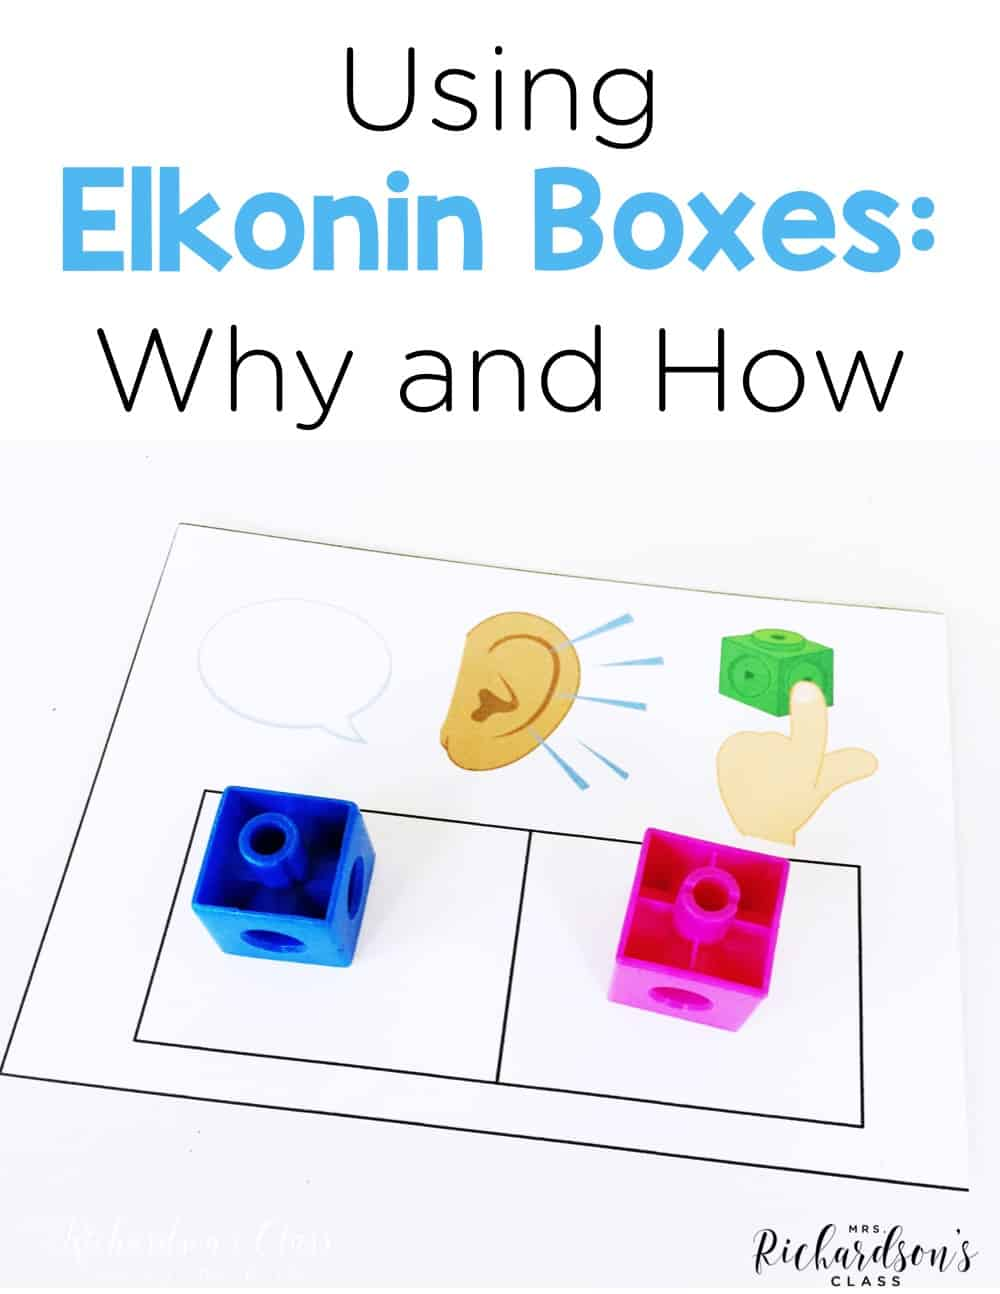 image about Elkonin Boxes Printable called Working with Elkonin Bins - Mrs. Richardsons Cl